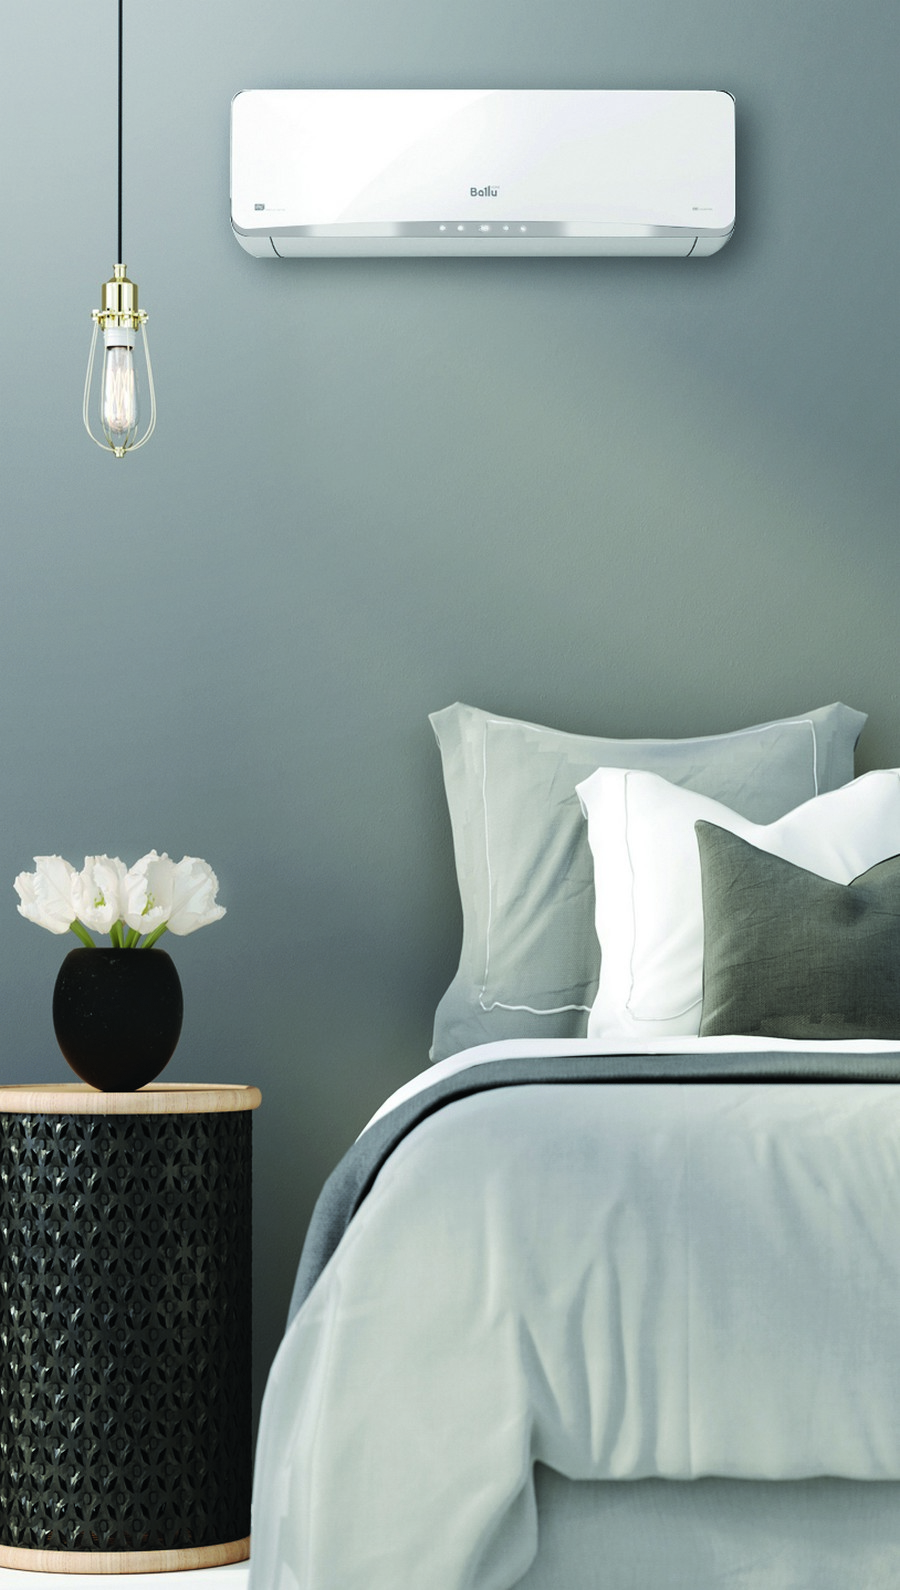 1-air-conditioner-in-the-bedroom-interior-design-minimalist-style-oval-nightstand-bluish-gray-wall-pendant-lamp-exposed-buld-wires-gray-bedspread-pillows